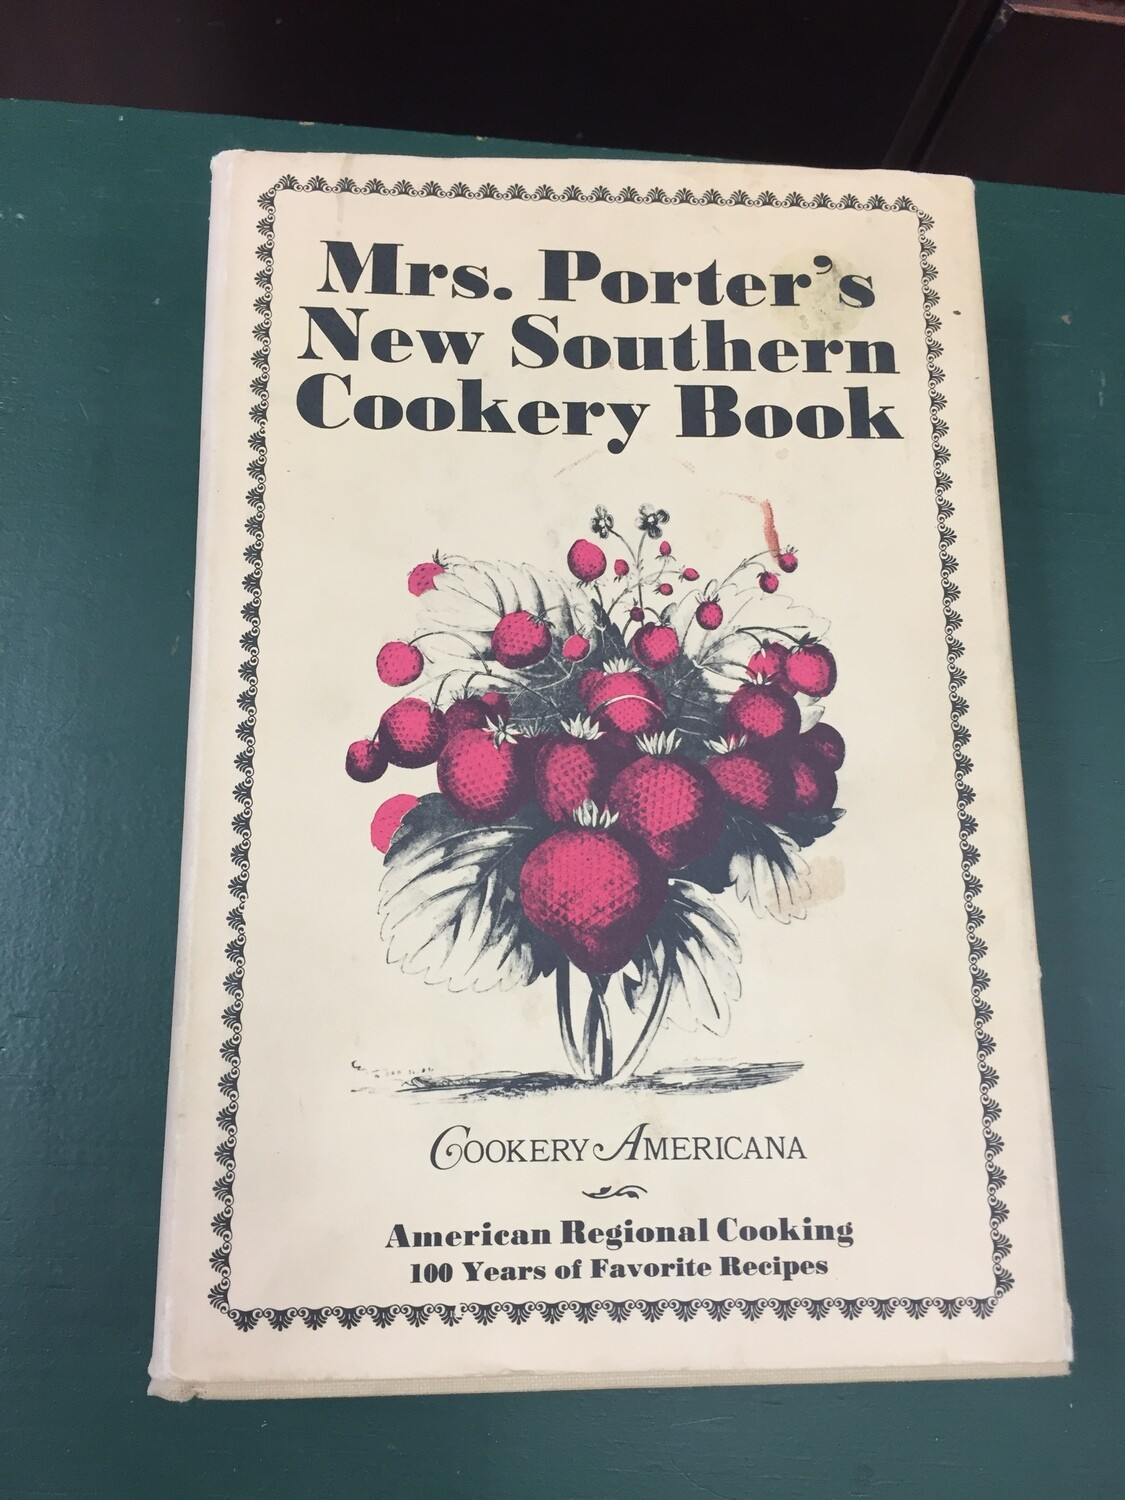 Mrs. Porter's new Southern Cookery Book